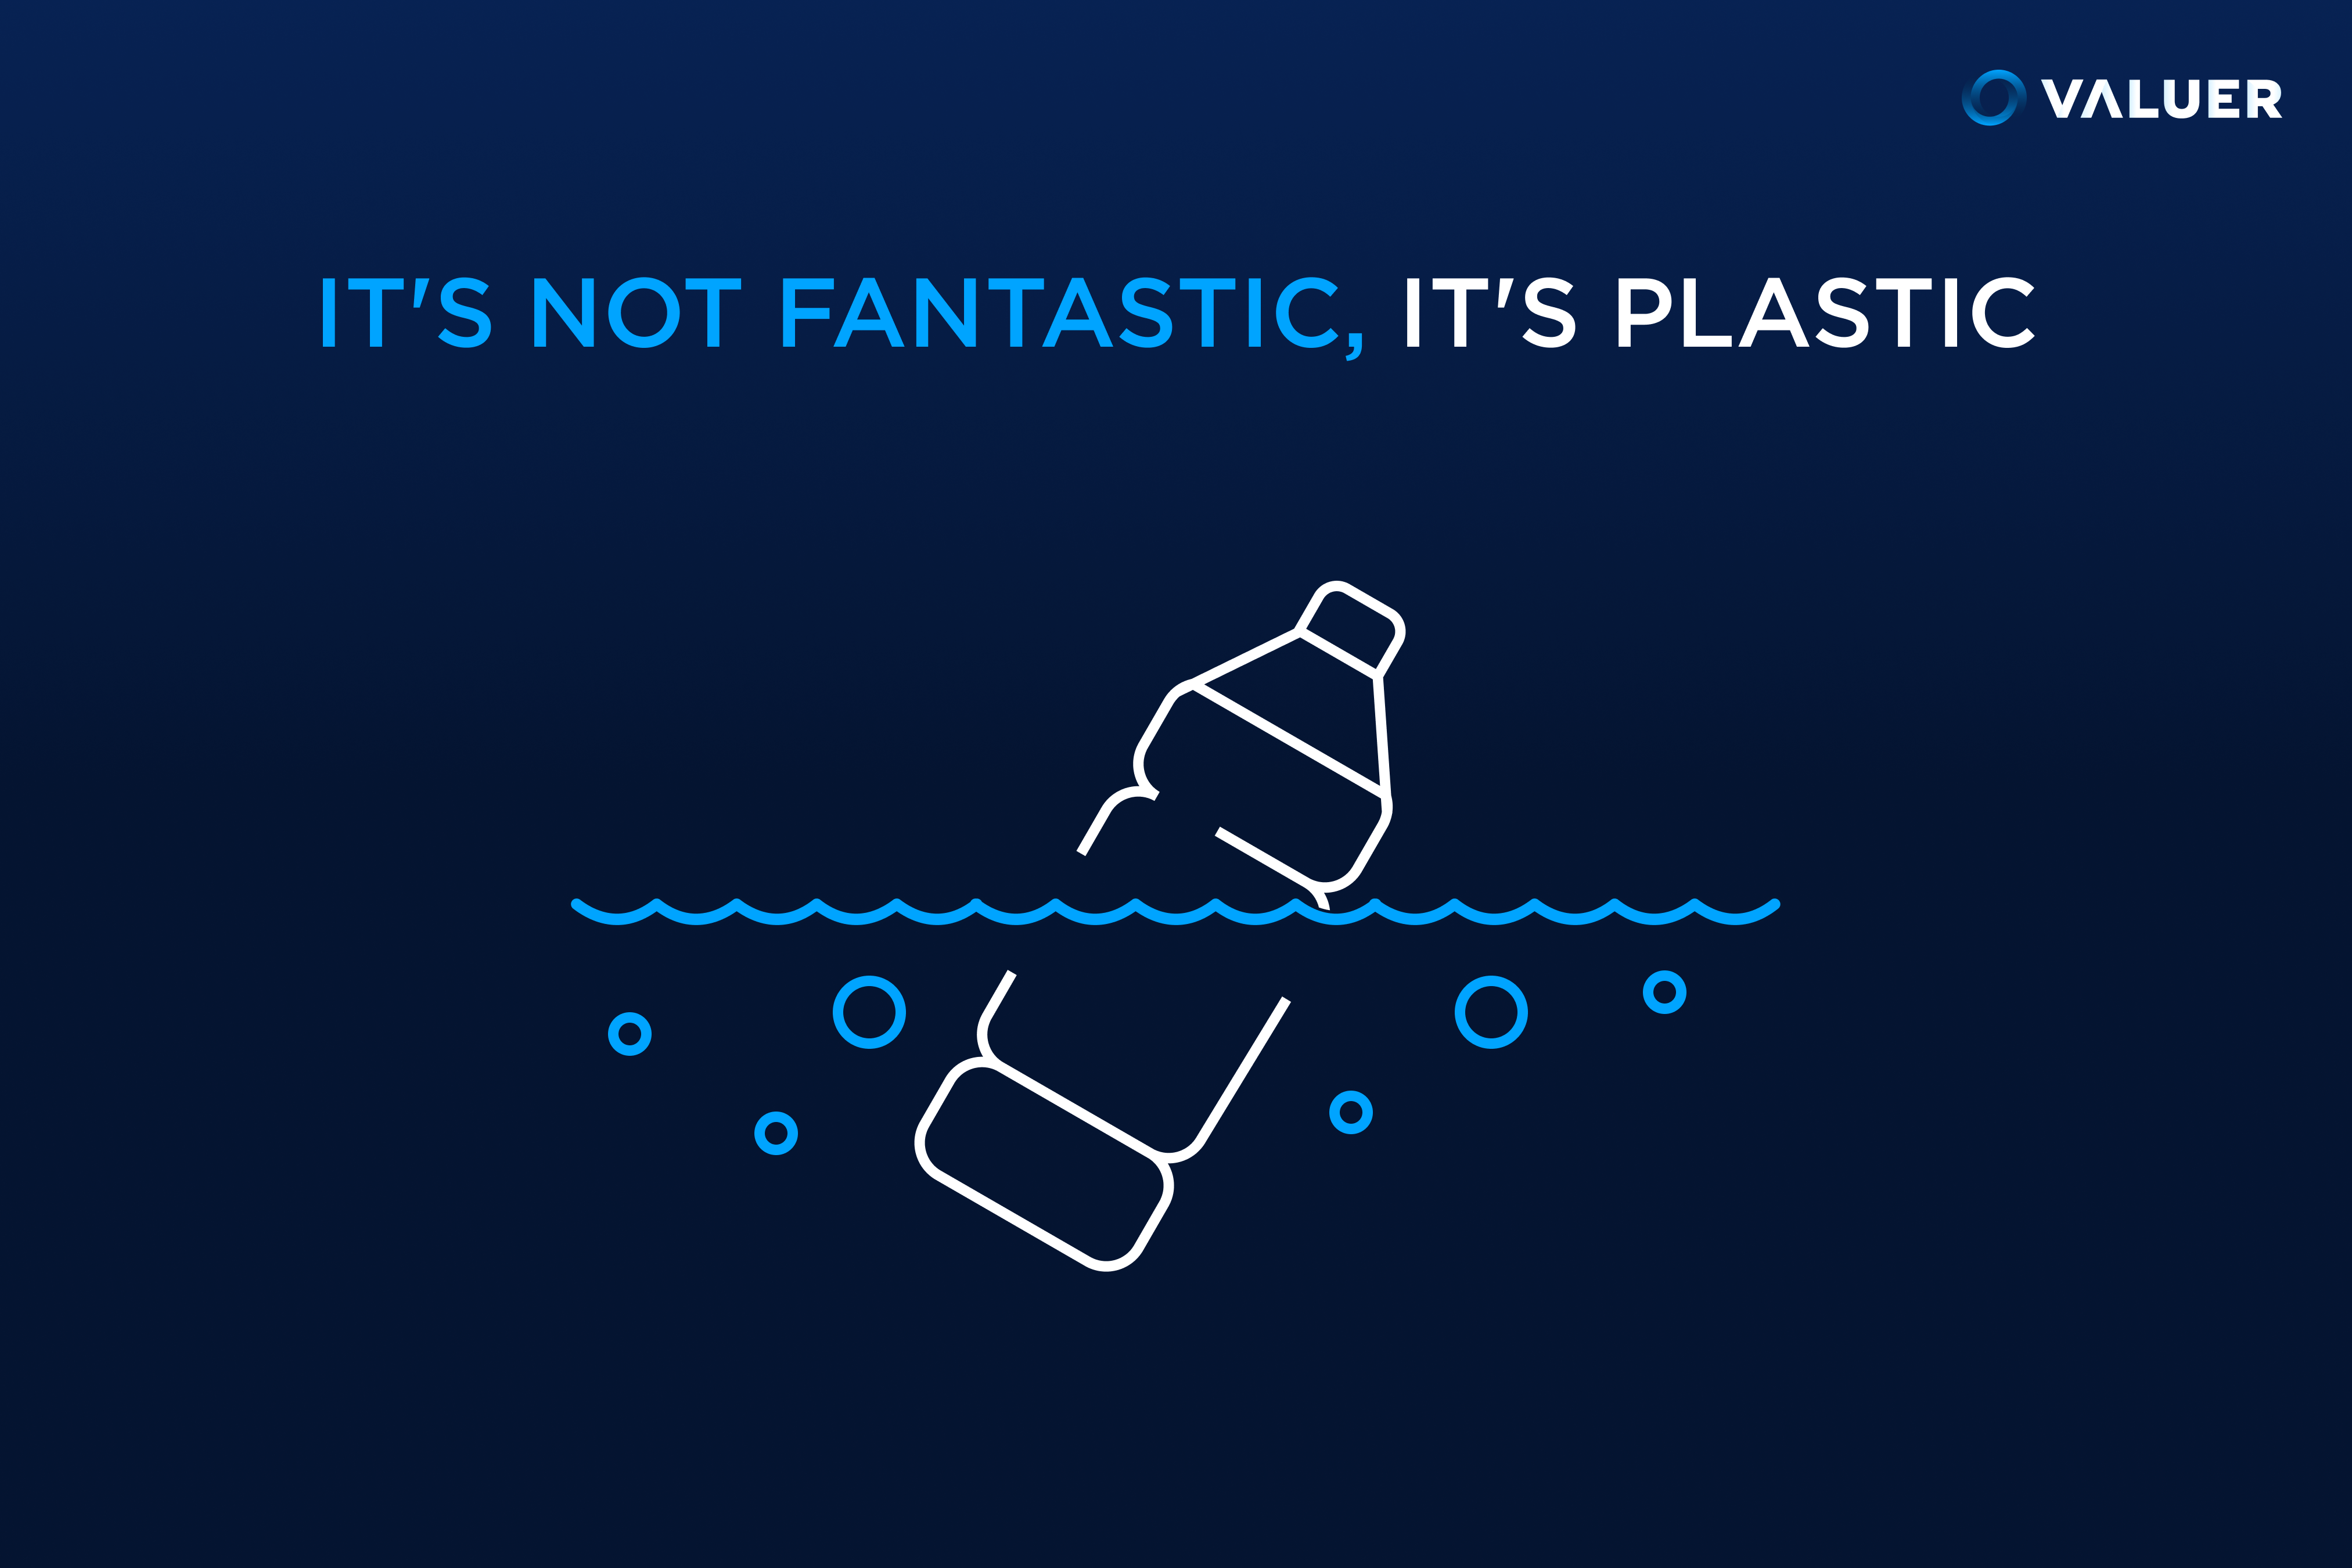 its not fantastic its plastic, with image of old water bottle floating in the ocean